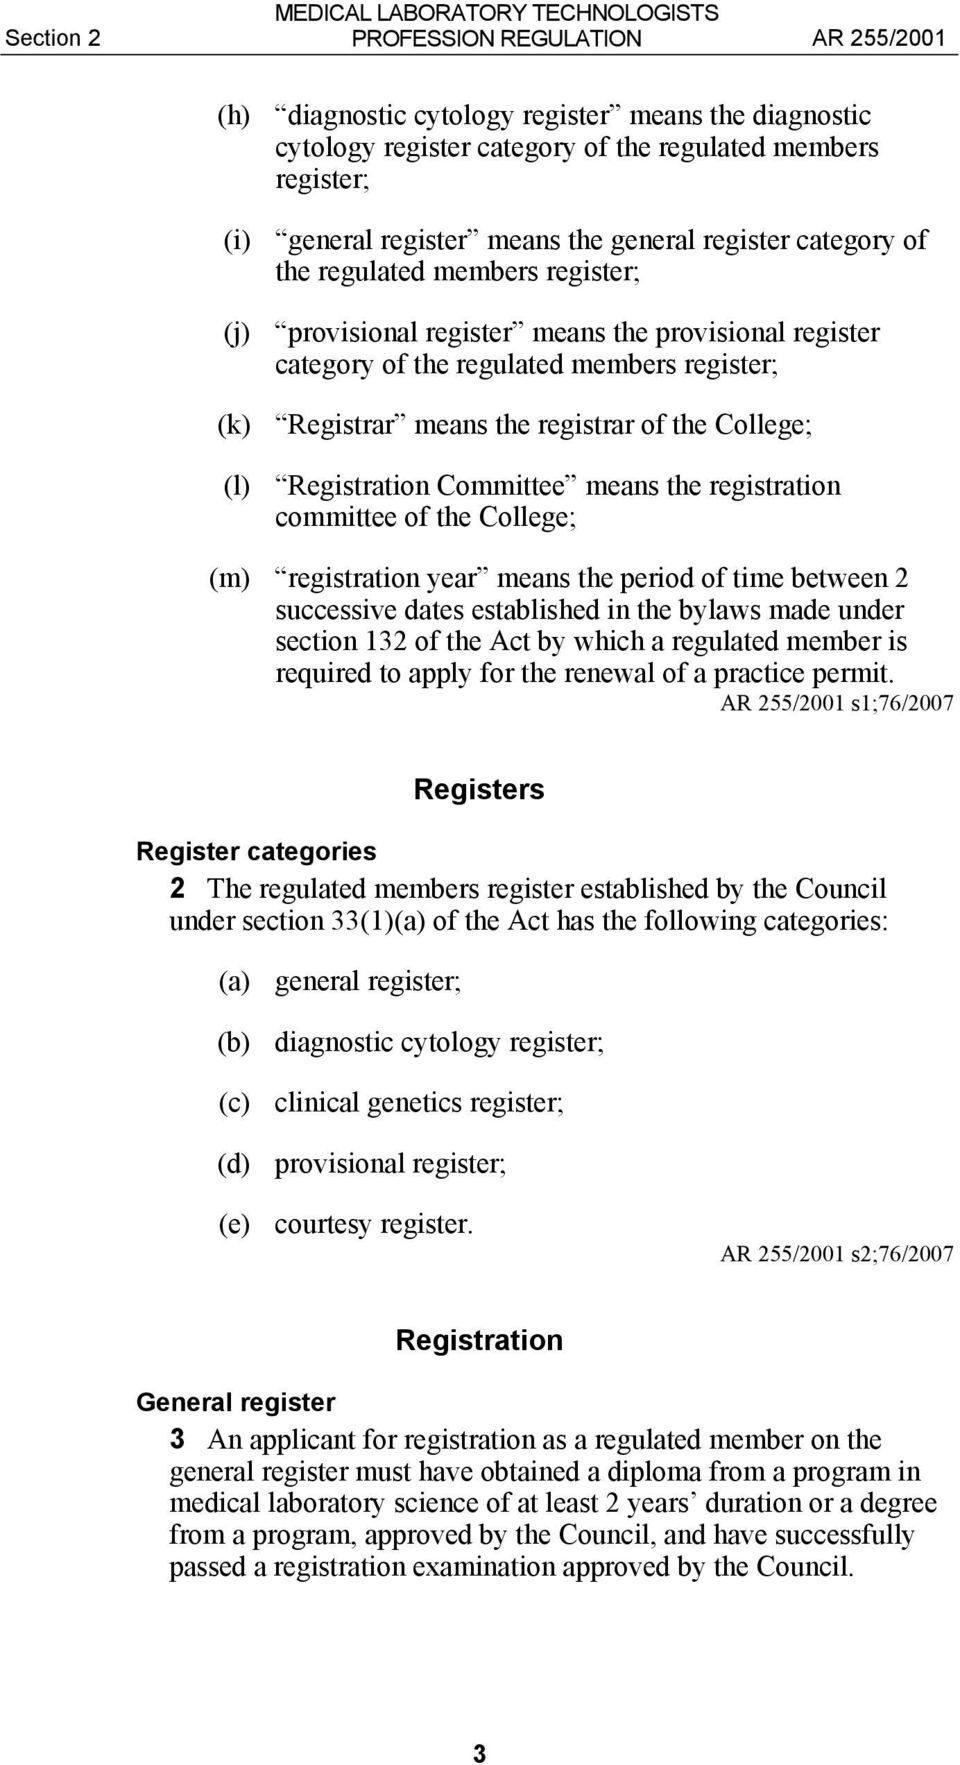 Registration Committee means the registration committee of the College; (m) registration year means the period of time between 2 successive dates established in the bylaws made under section 132 of